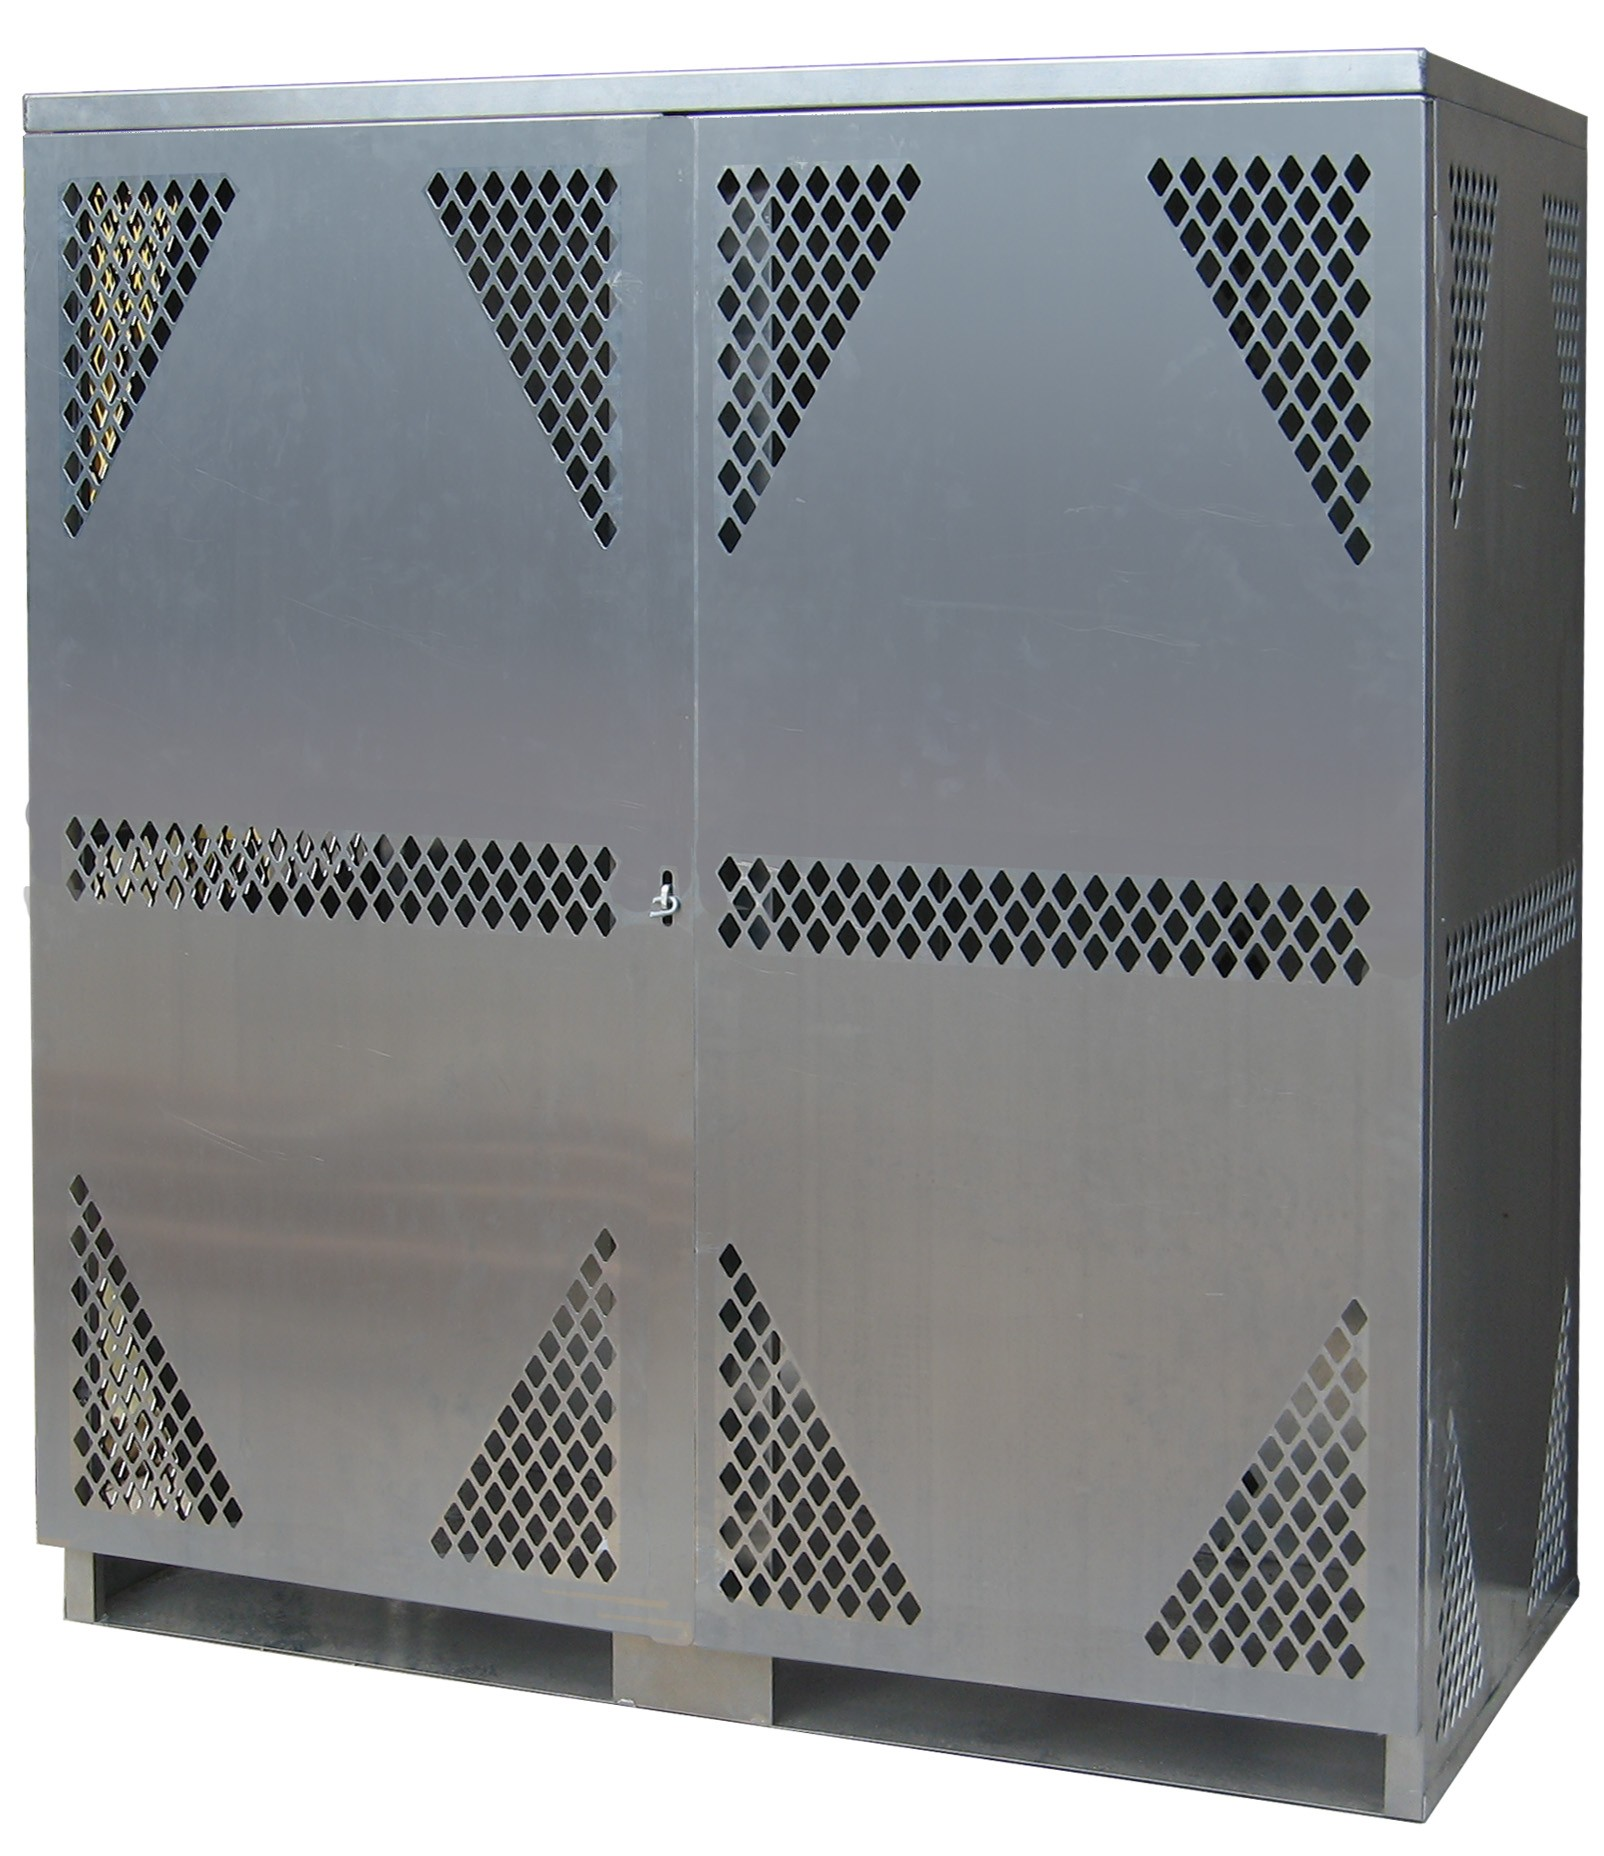 OG20 - LP/Oxygen Storage Cabinet - 10-20 Cyl. Vertical Standard 2-Door